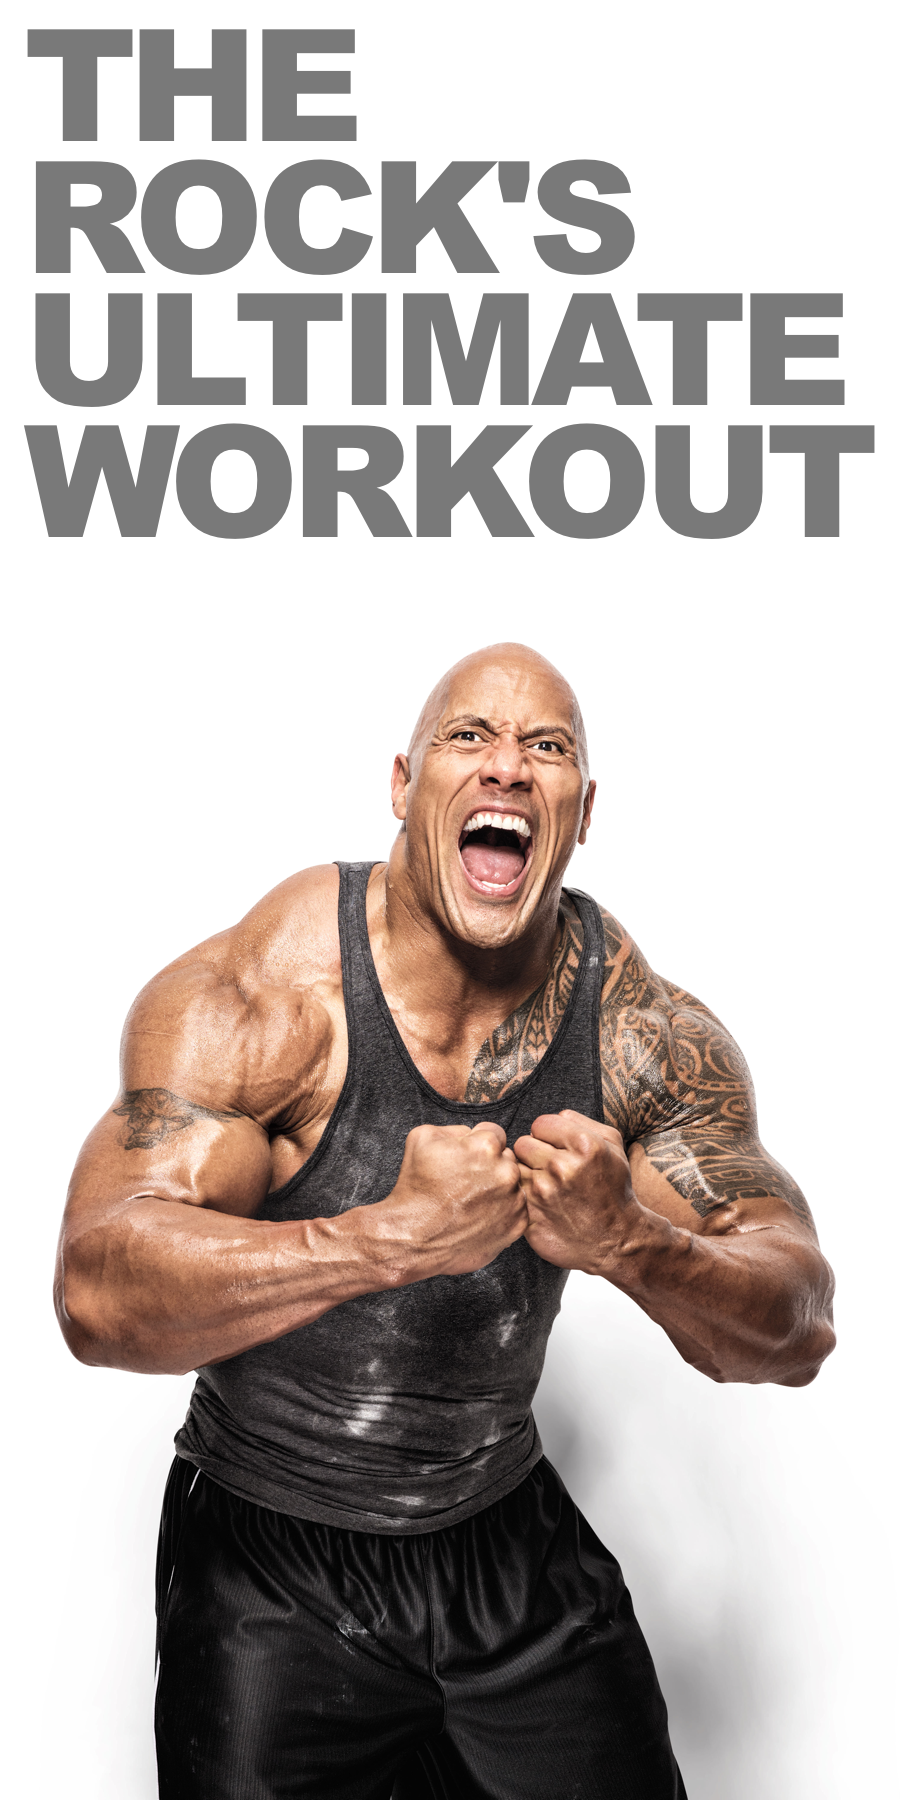 Learn How To Go Beast Mode In The Gym Like Dwayne The Rock Johnson As He Shares What He Cal The Rock Dwayne Johnson Workout The Rock Workout Ultimate Workout